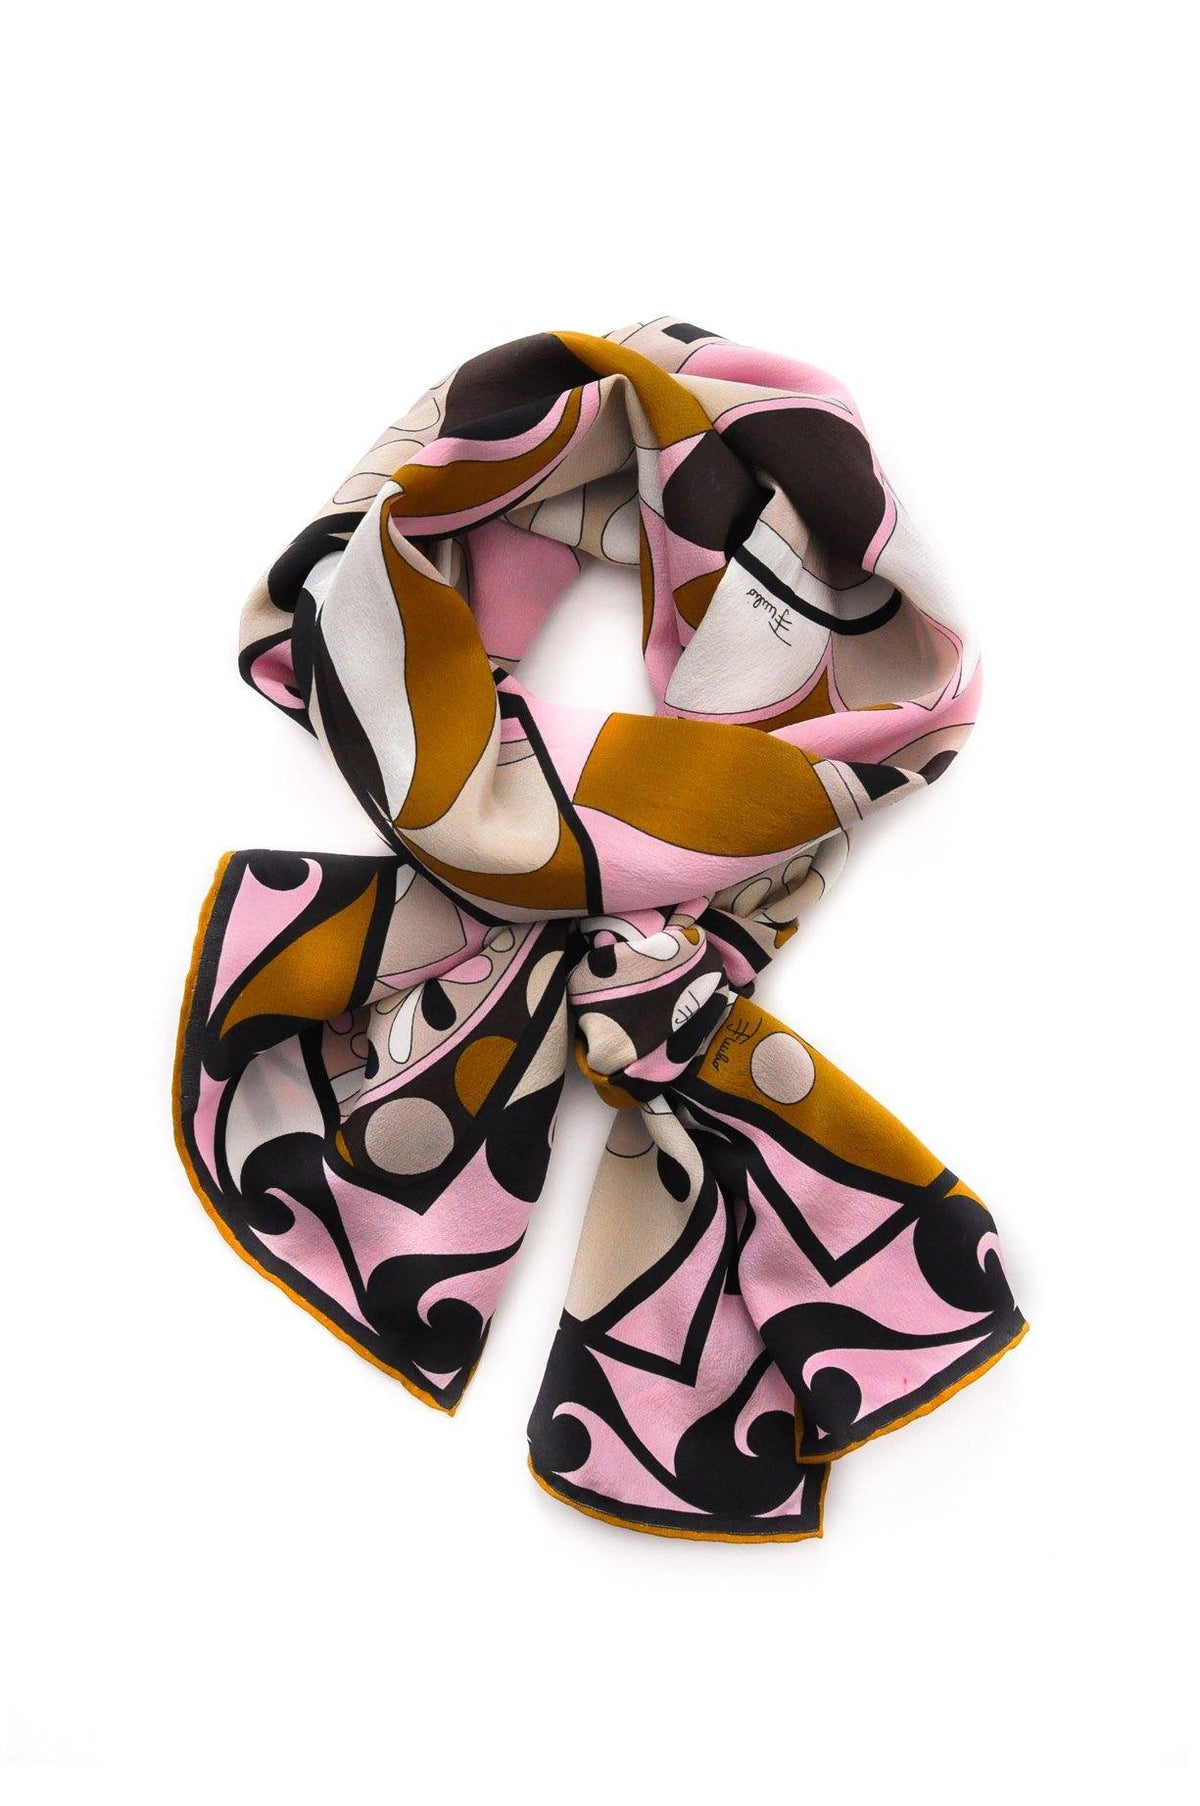 Vintage Pucci geometric rectangle scarf from Sweet & Spark.